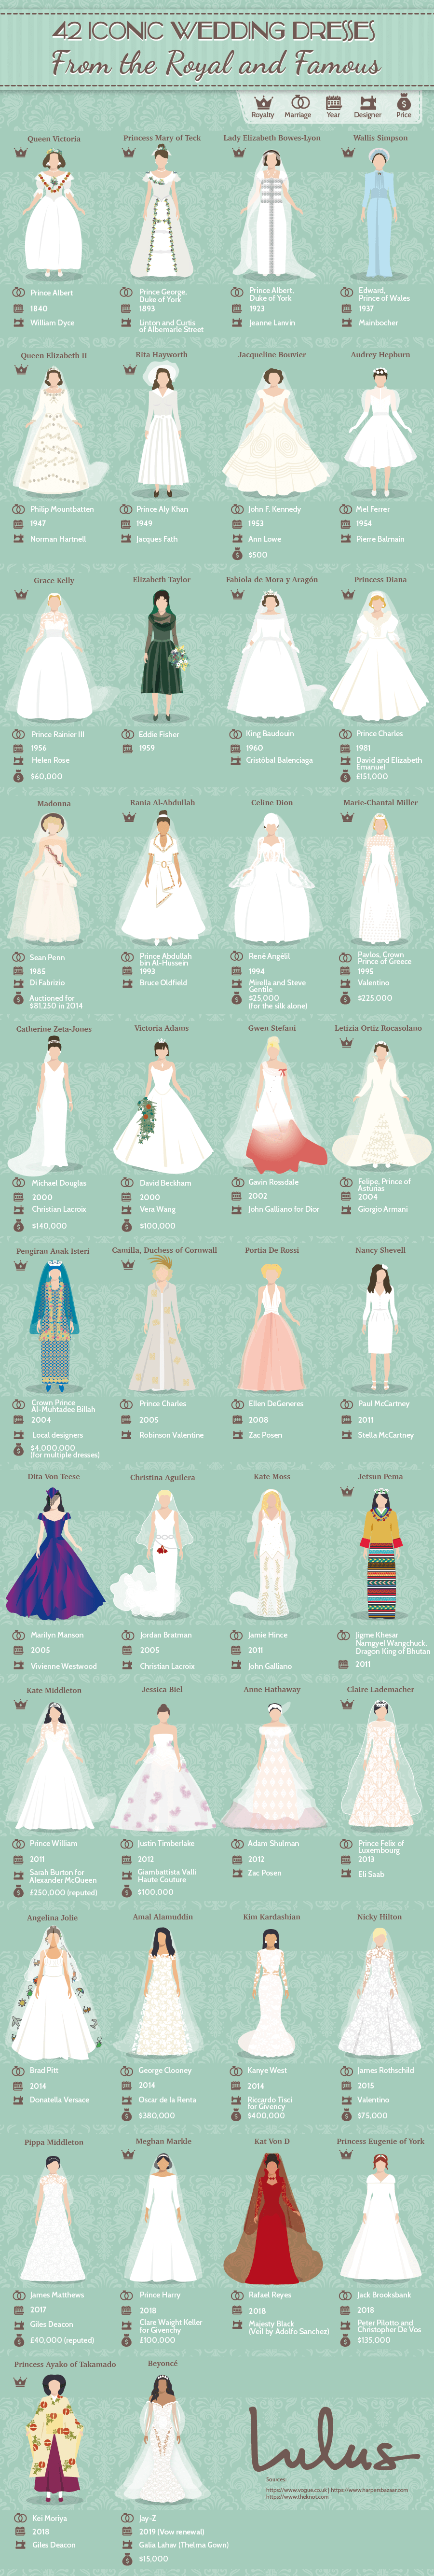 Infographic reveals the most iconic wedding dresses of all time (and their price tags)